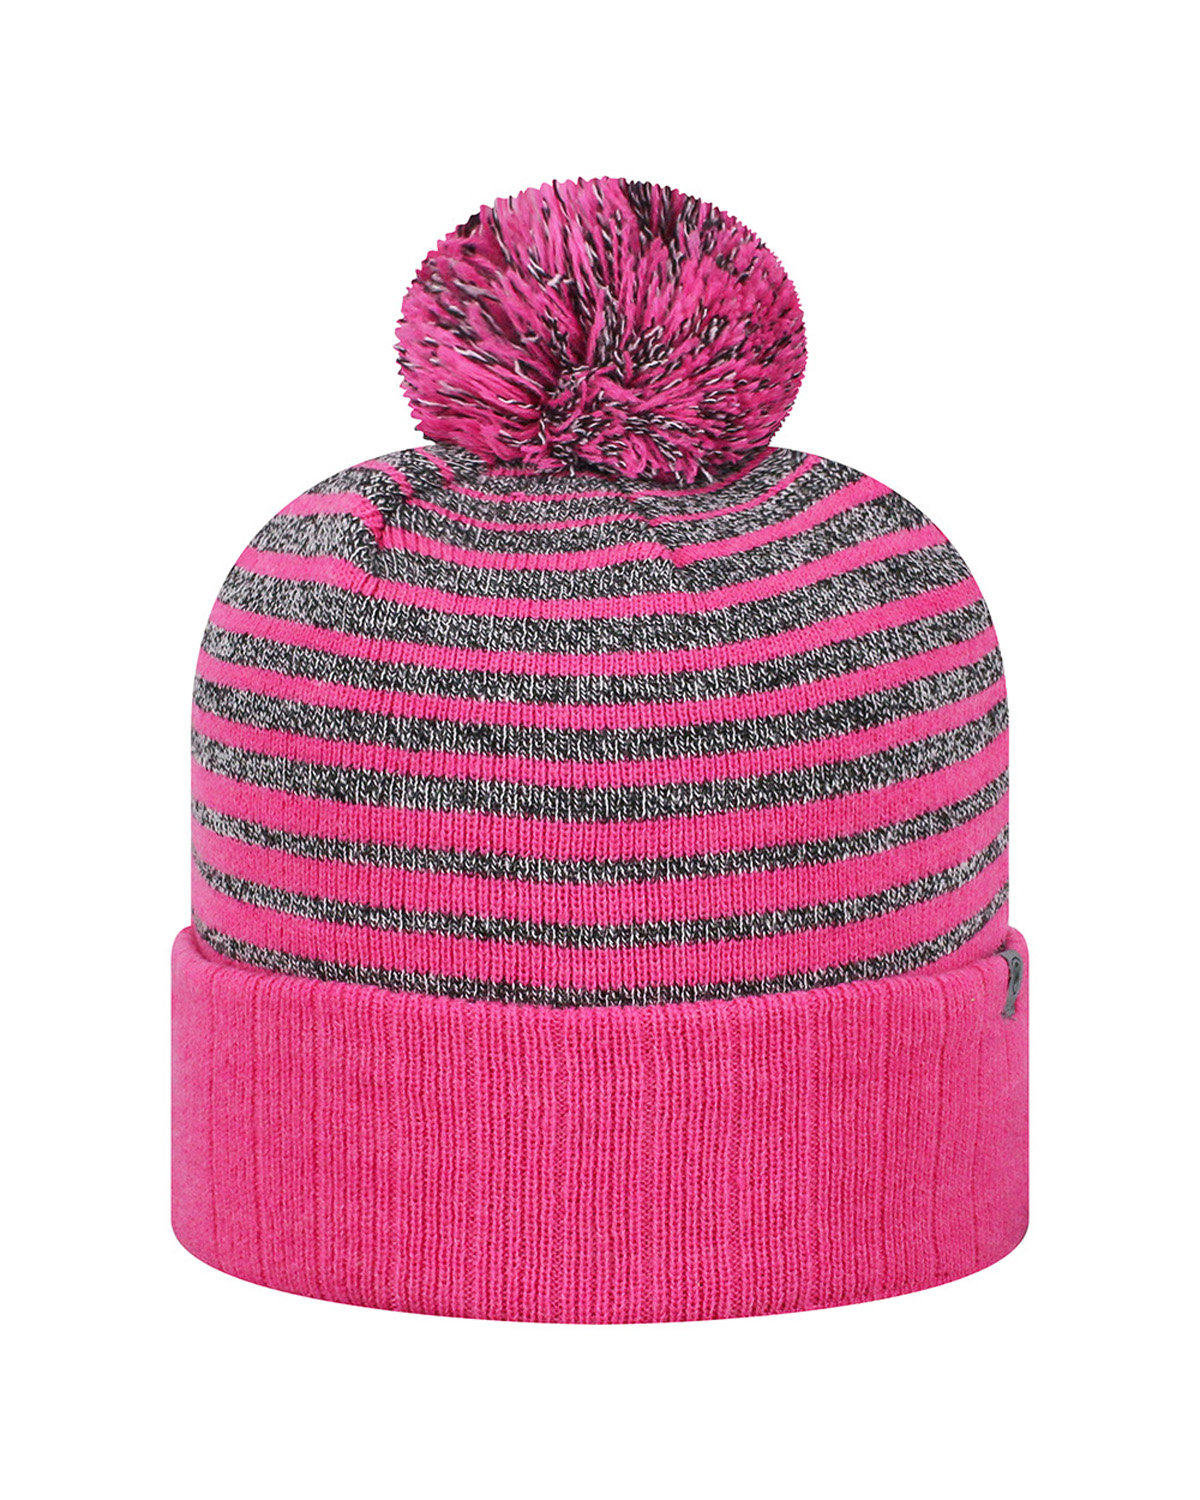 Top Of The World Adult Ritz Knit Cap WILDBERRY